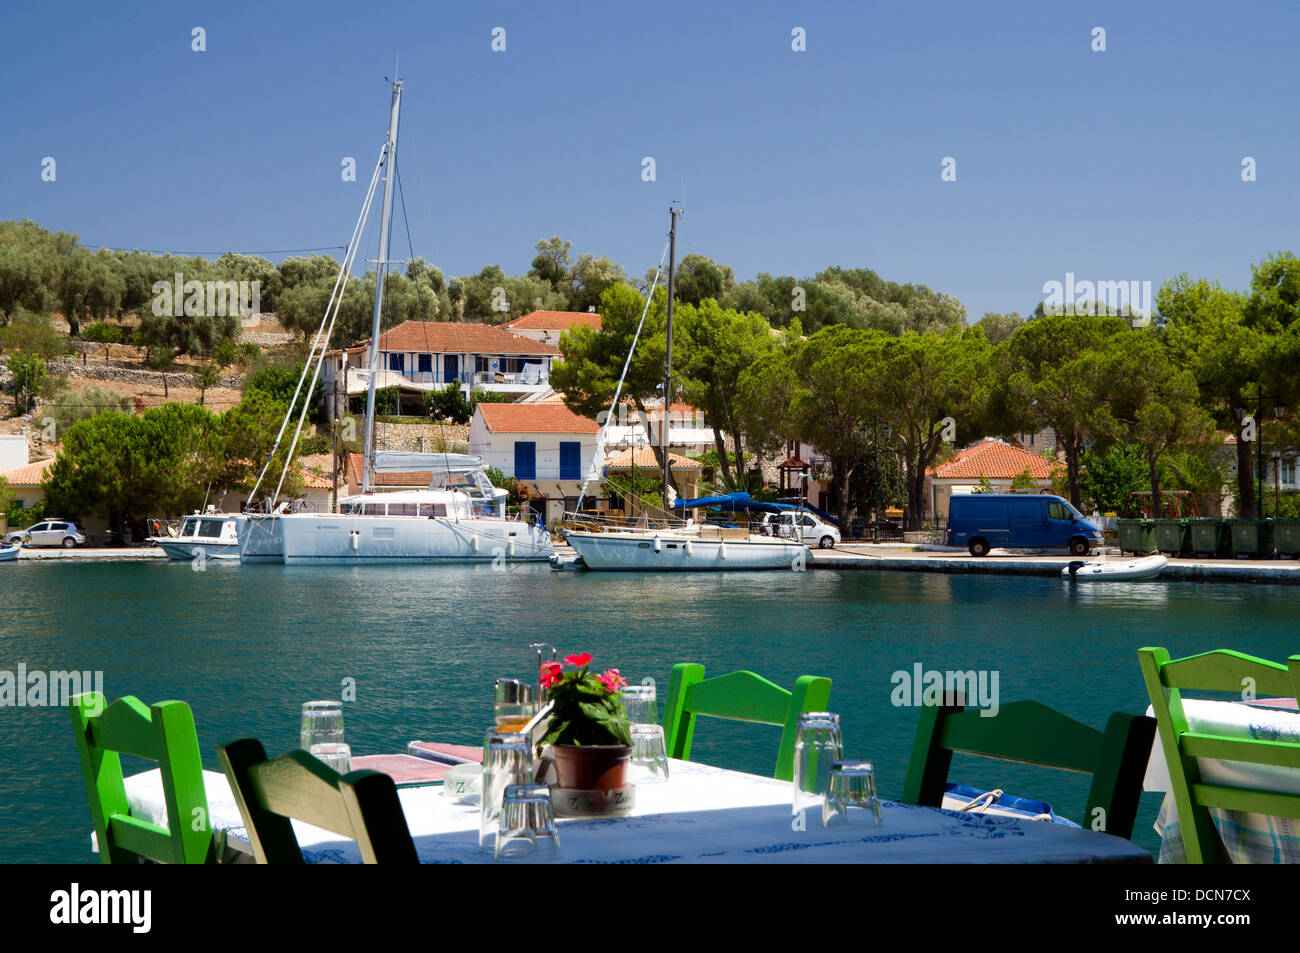 Yachts moored in Vathi Harbour from a waterfront Taverna, Meganisi, Lefkas, Ionian Islands, Greece. - Stock Image